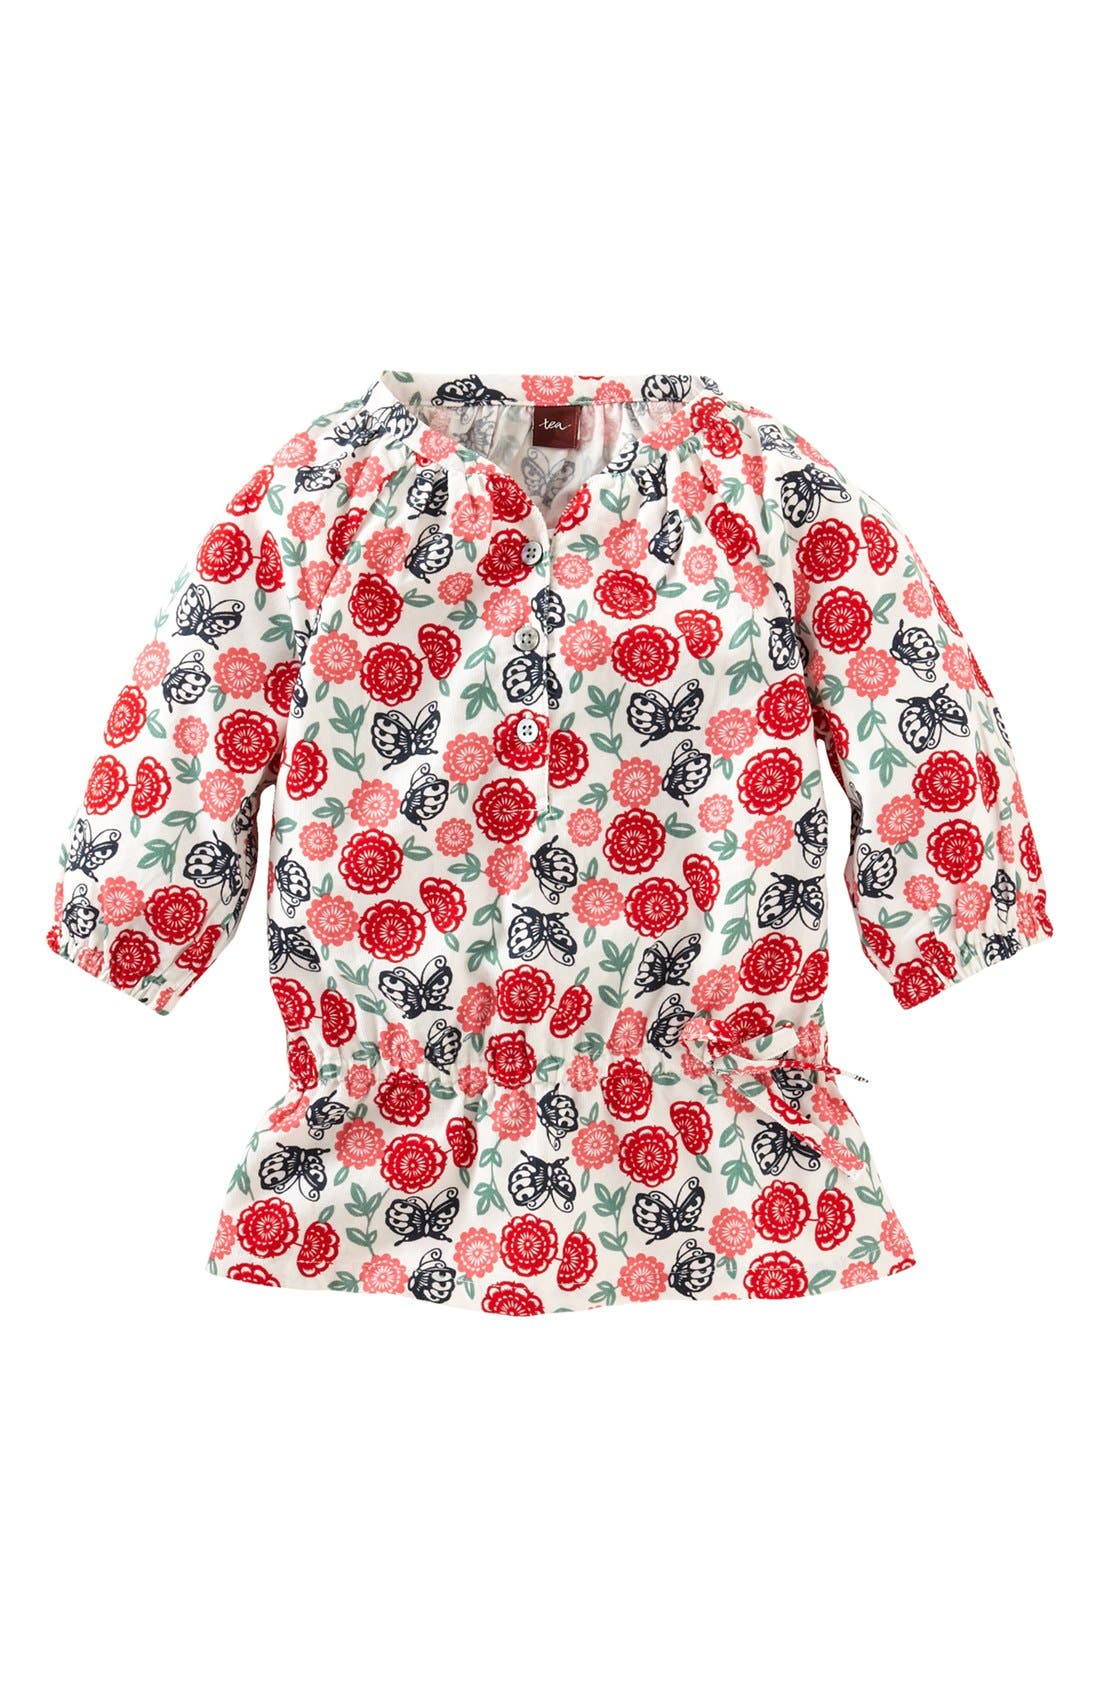 Alternate Image 1 Selected - Tea Collection 'Butterfly' Corduroy Top (Little Girls & Big Girls)